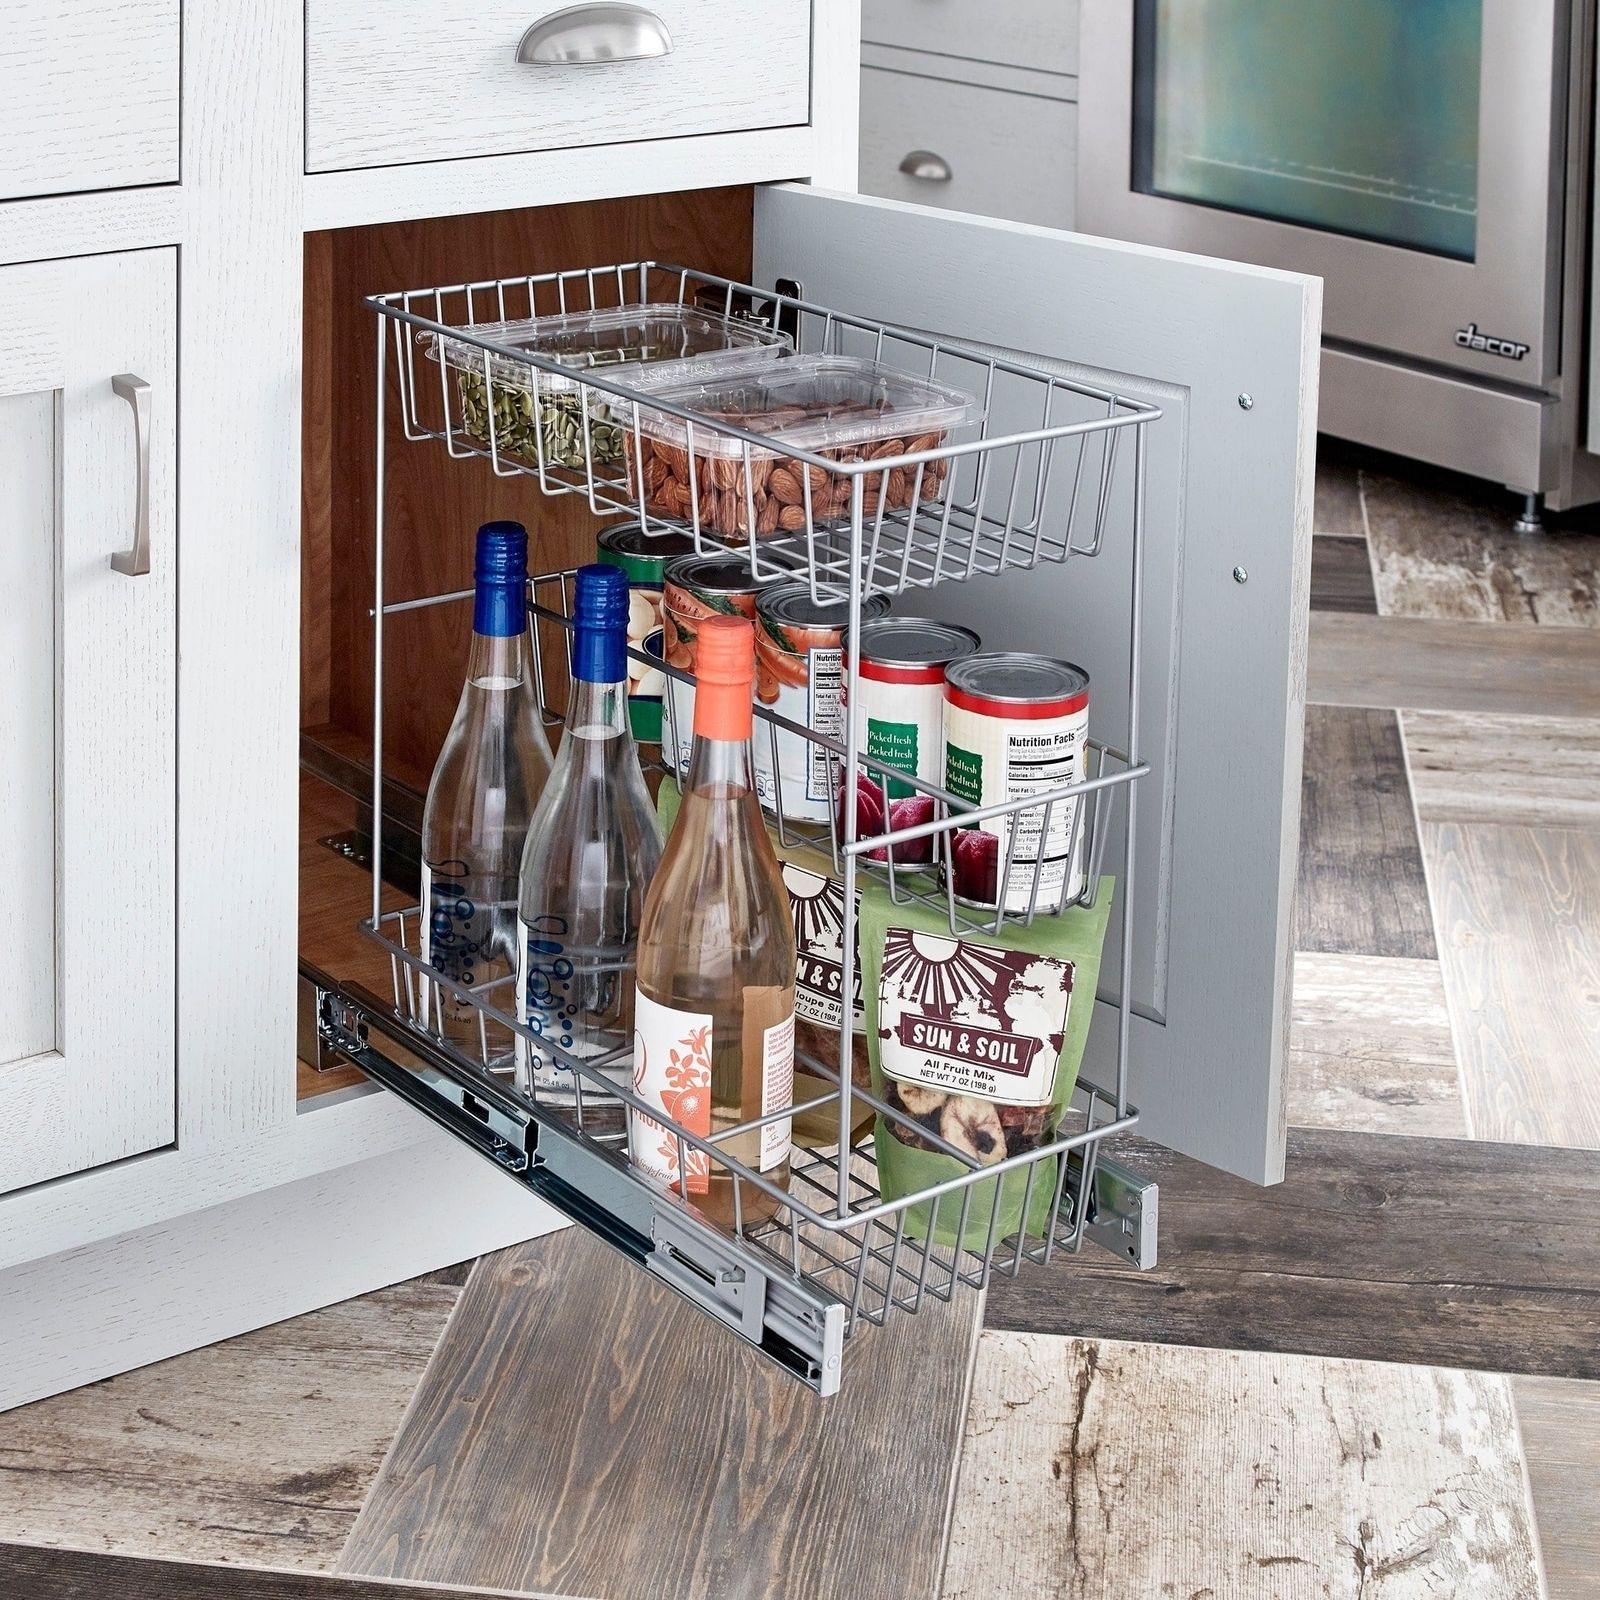 Pull Out Drawer Kitchen Cabinet Specs: ClosetMaid 3 Tier Pull Out Basket